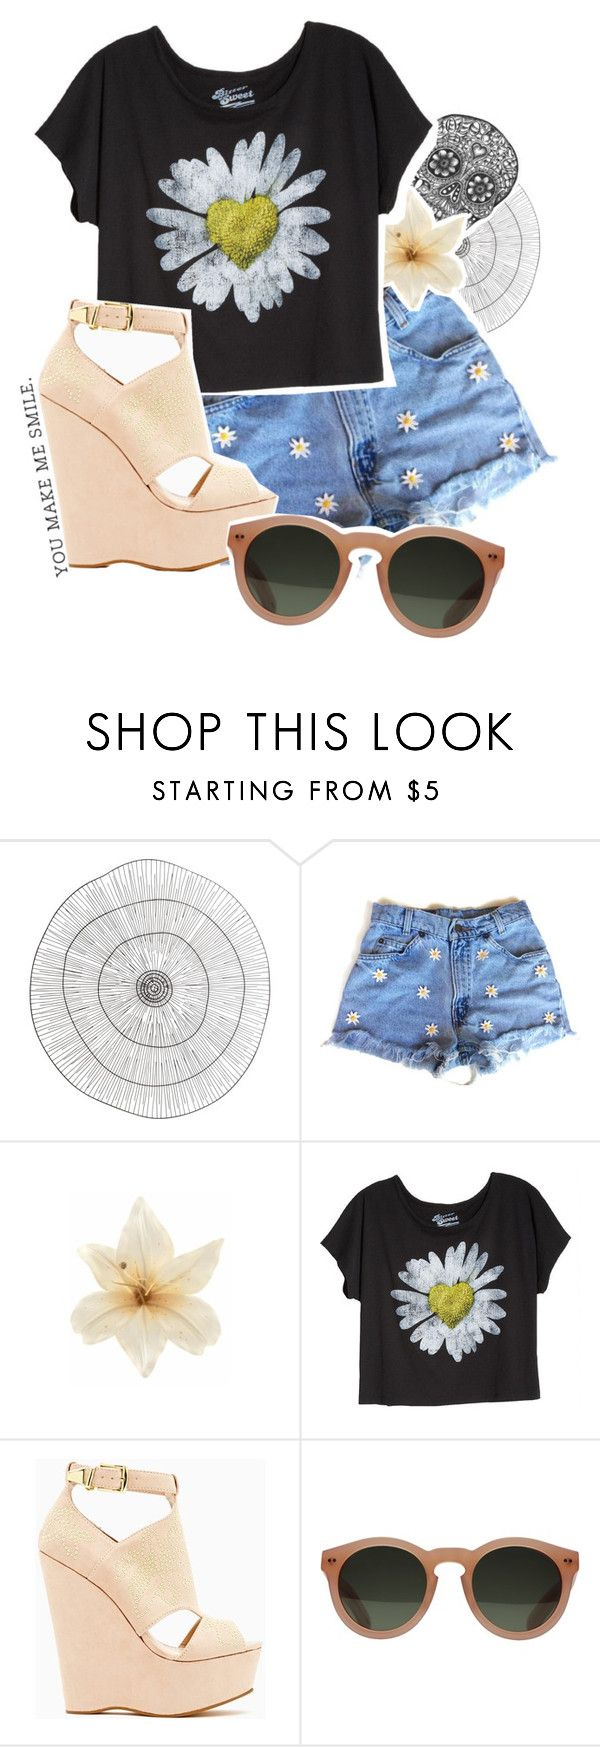 """""""/ / when i met you in the summer"""" by marsh-mallow ❤ liked on Polyvore featuring Cyan Design, Clips, Betsey Johnson and GANT"""